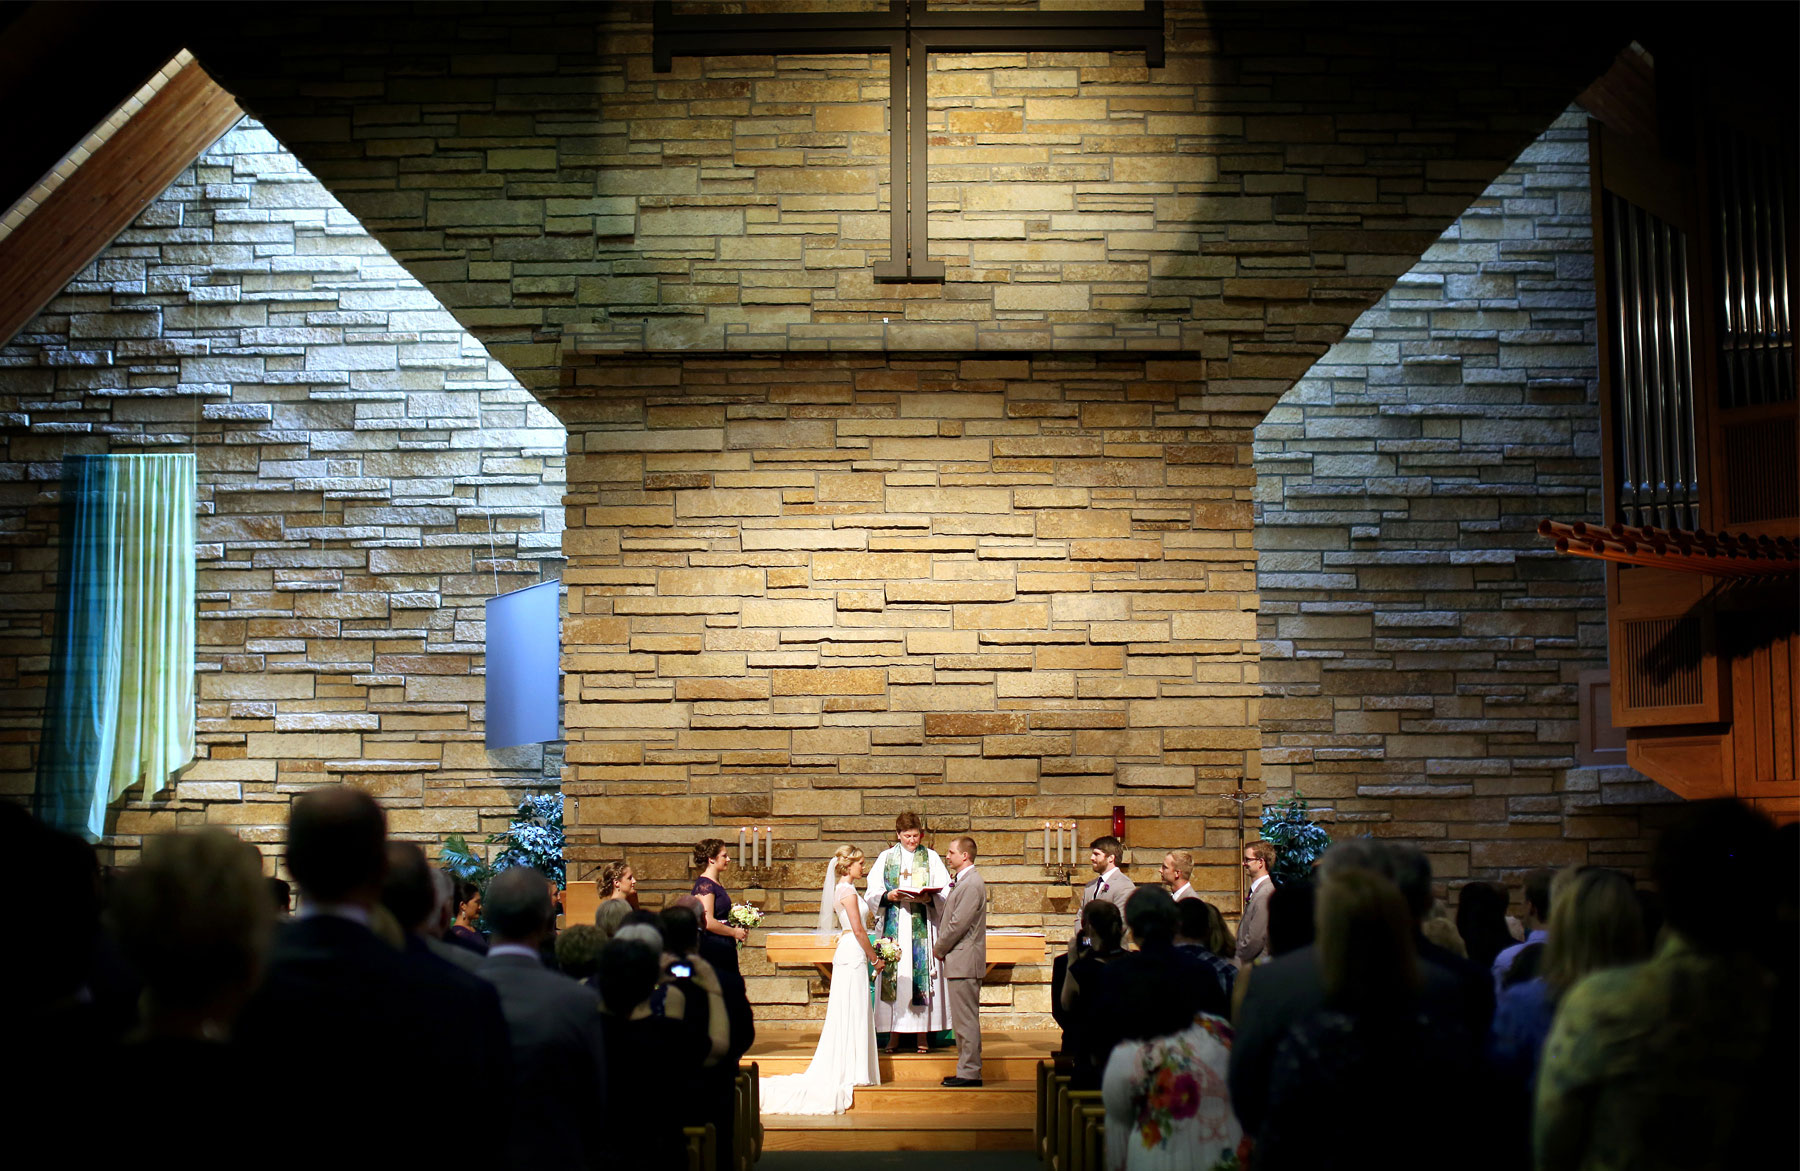 08-Minneapolis-MN-Wedding-Photography-by-Vick-Photography-Incarnation-Lutheran-Church-Ceremony-Alyssa-&-Blake.jpg